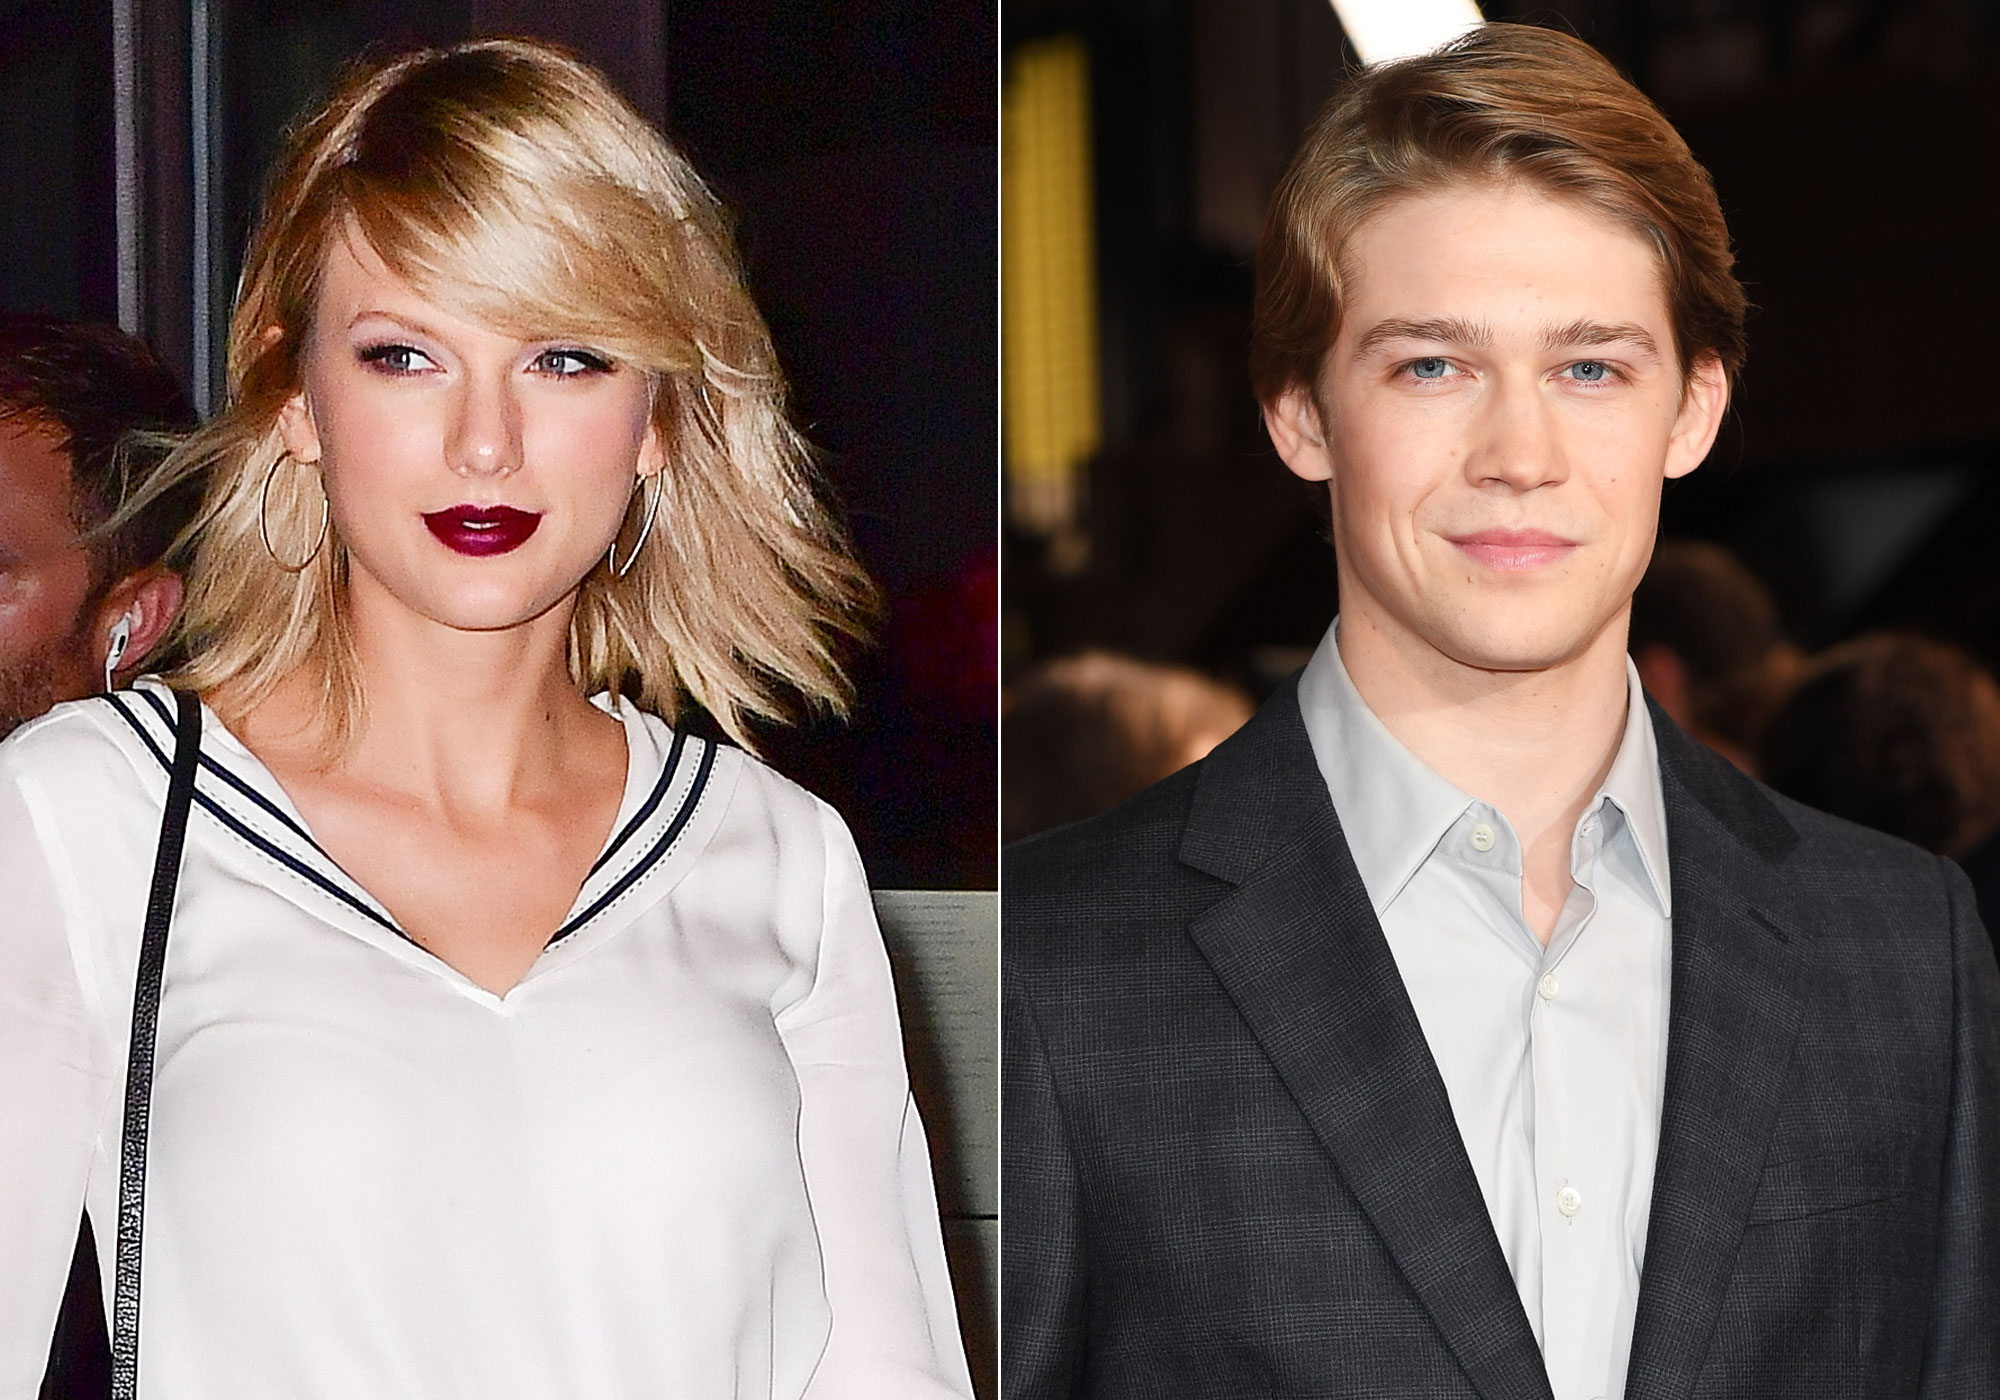 Taylor Swift and Joe Alwyn go hand-in-hand in public